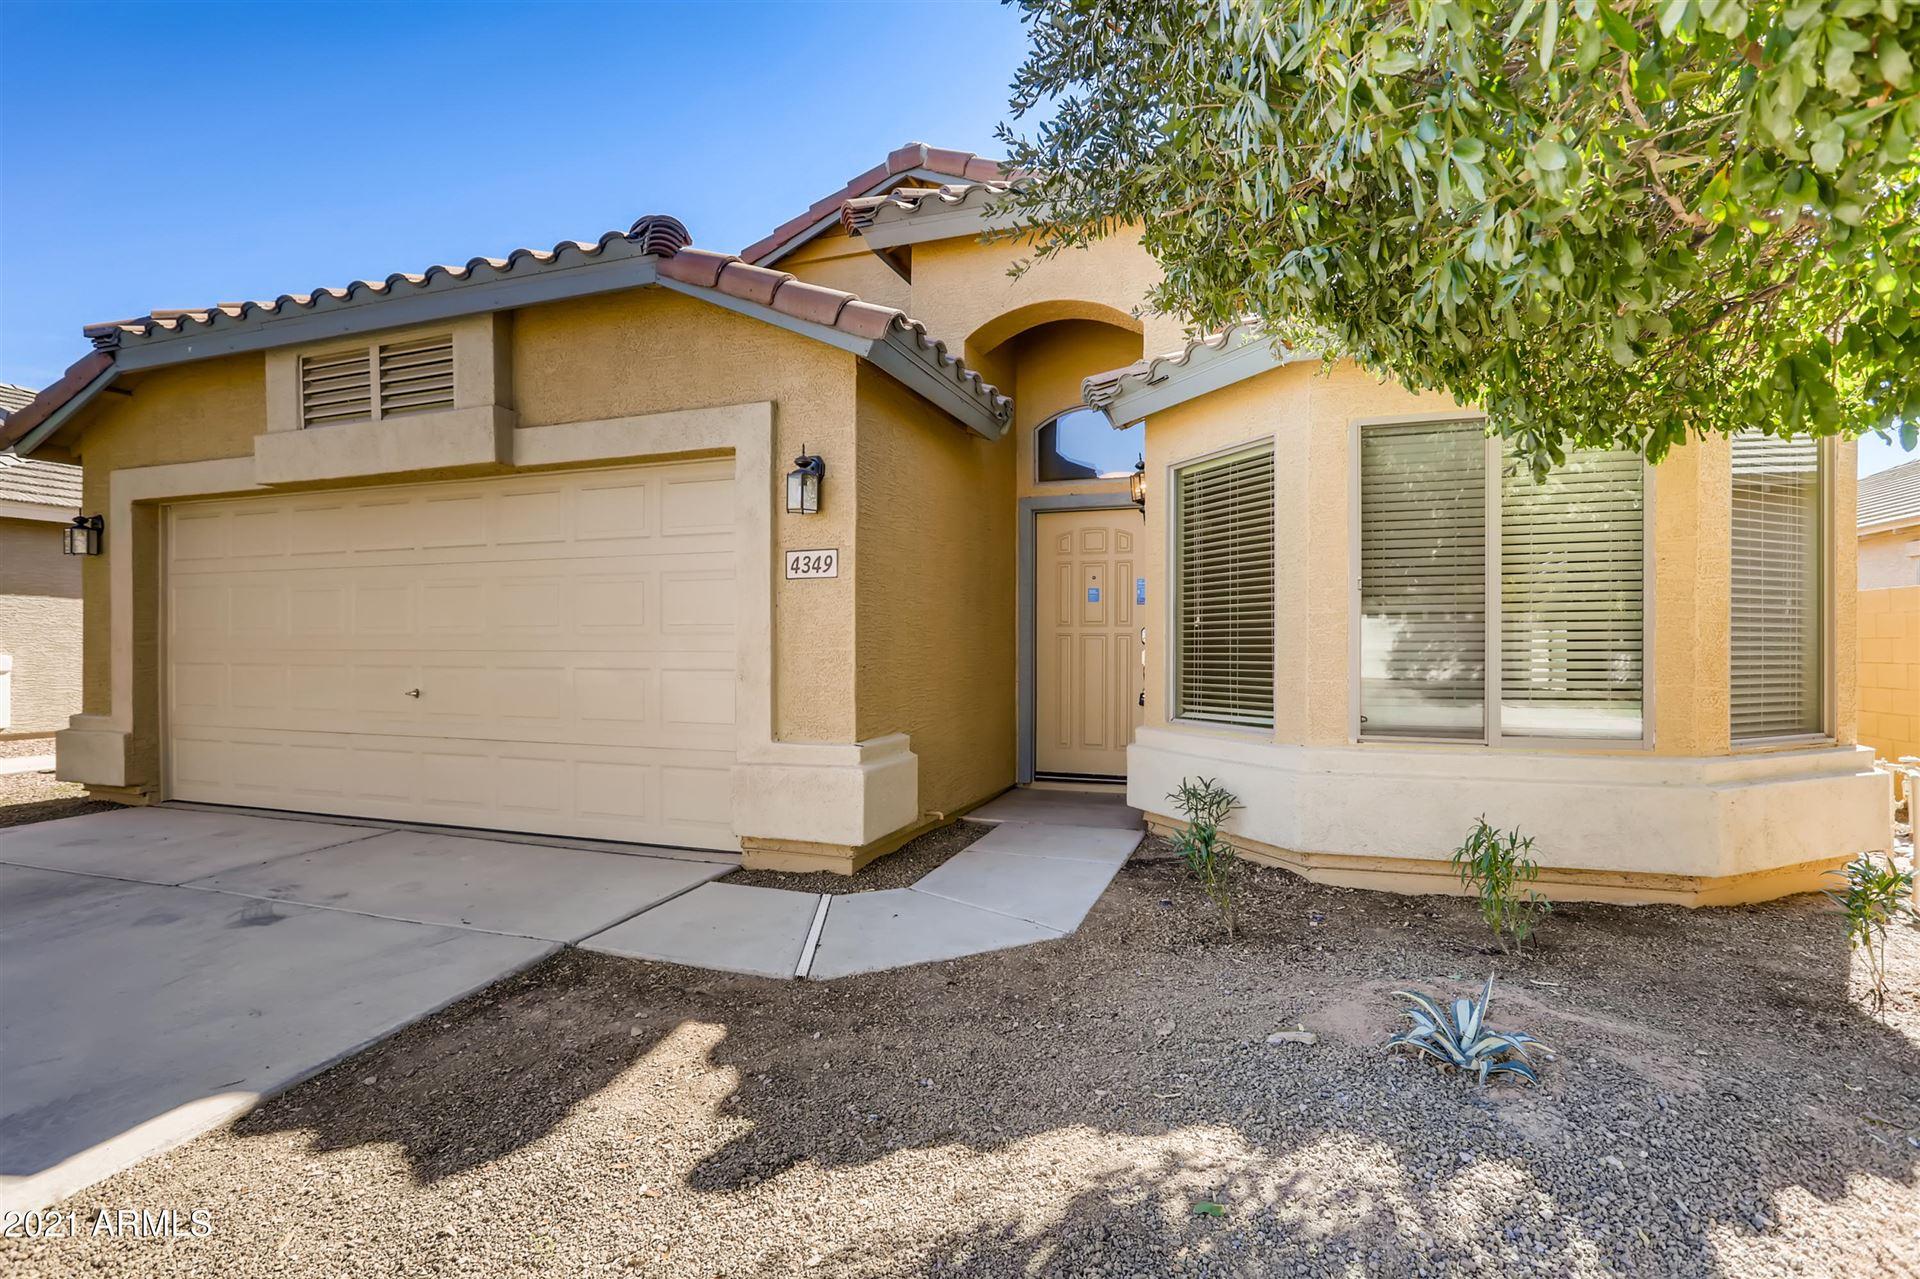 Photo of 4349 E AMARILLO Drive, San Tan Valley, AZ 85140 (MLS # 6199768)